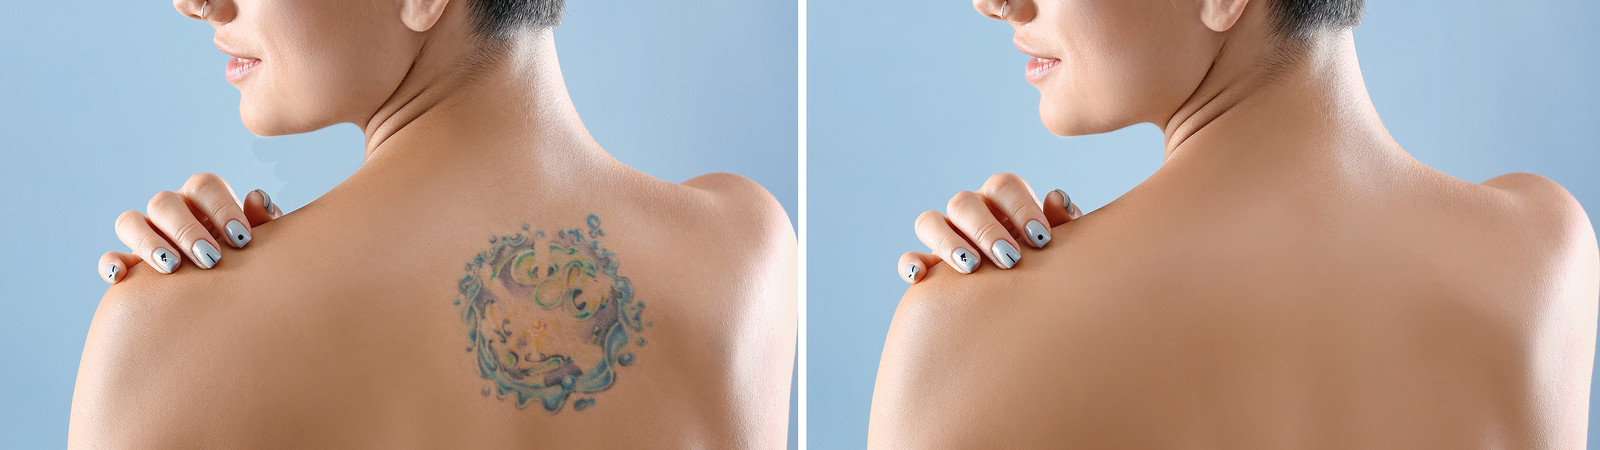 laser tattoo removal, Effective Treatment: How Long Does Laser Tattoo Removal Take?